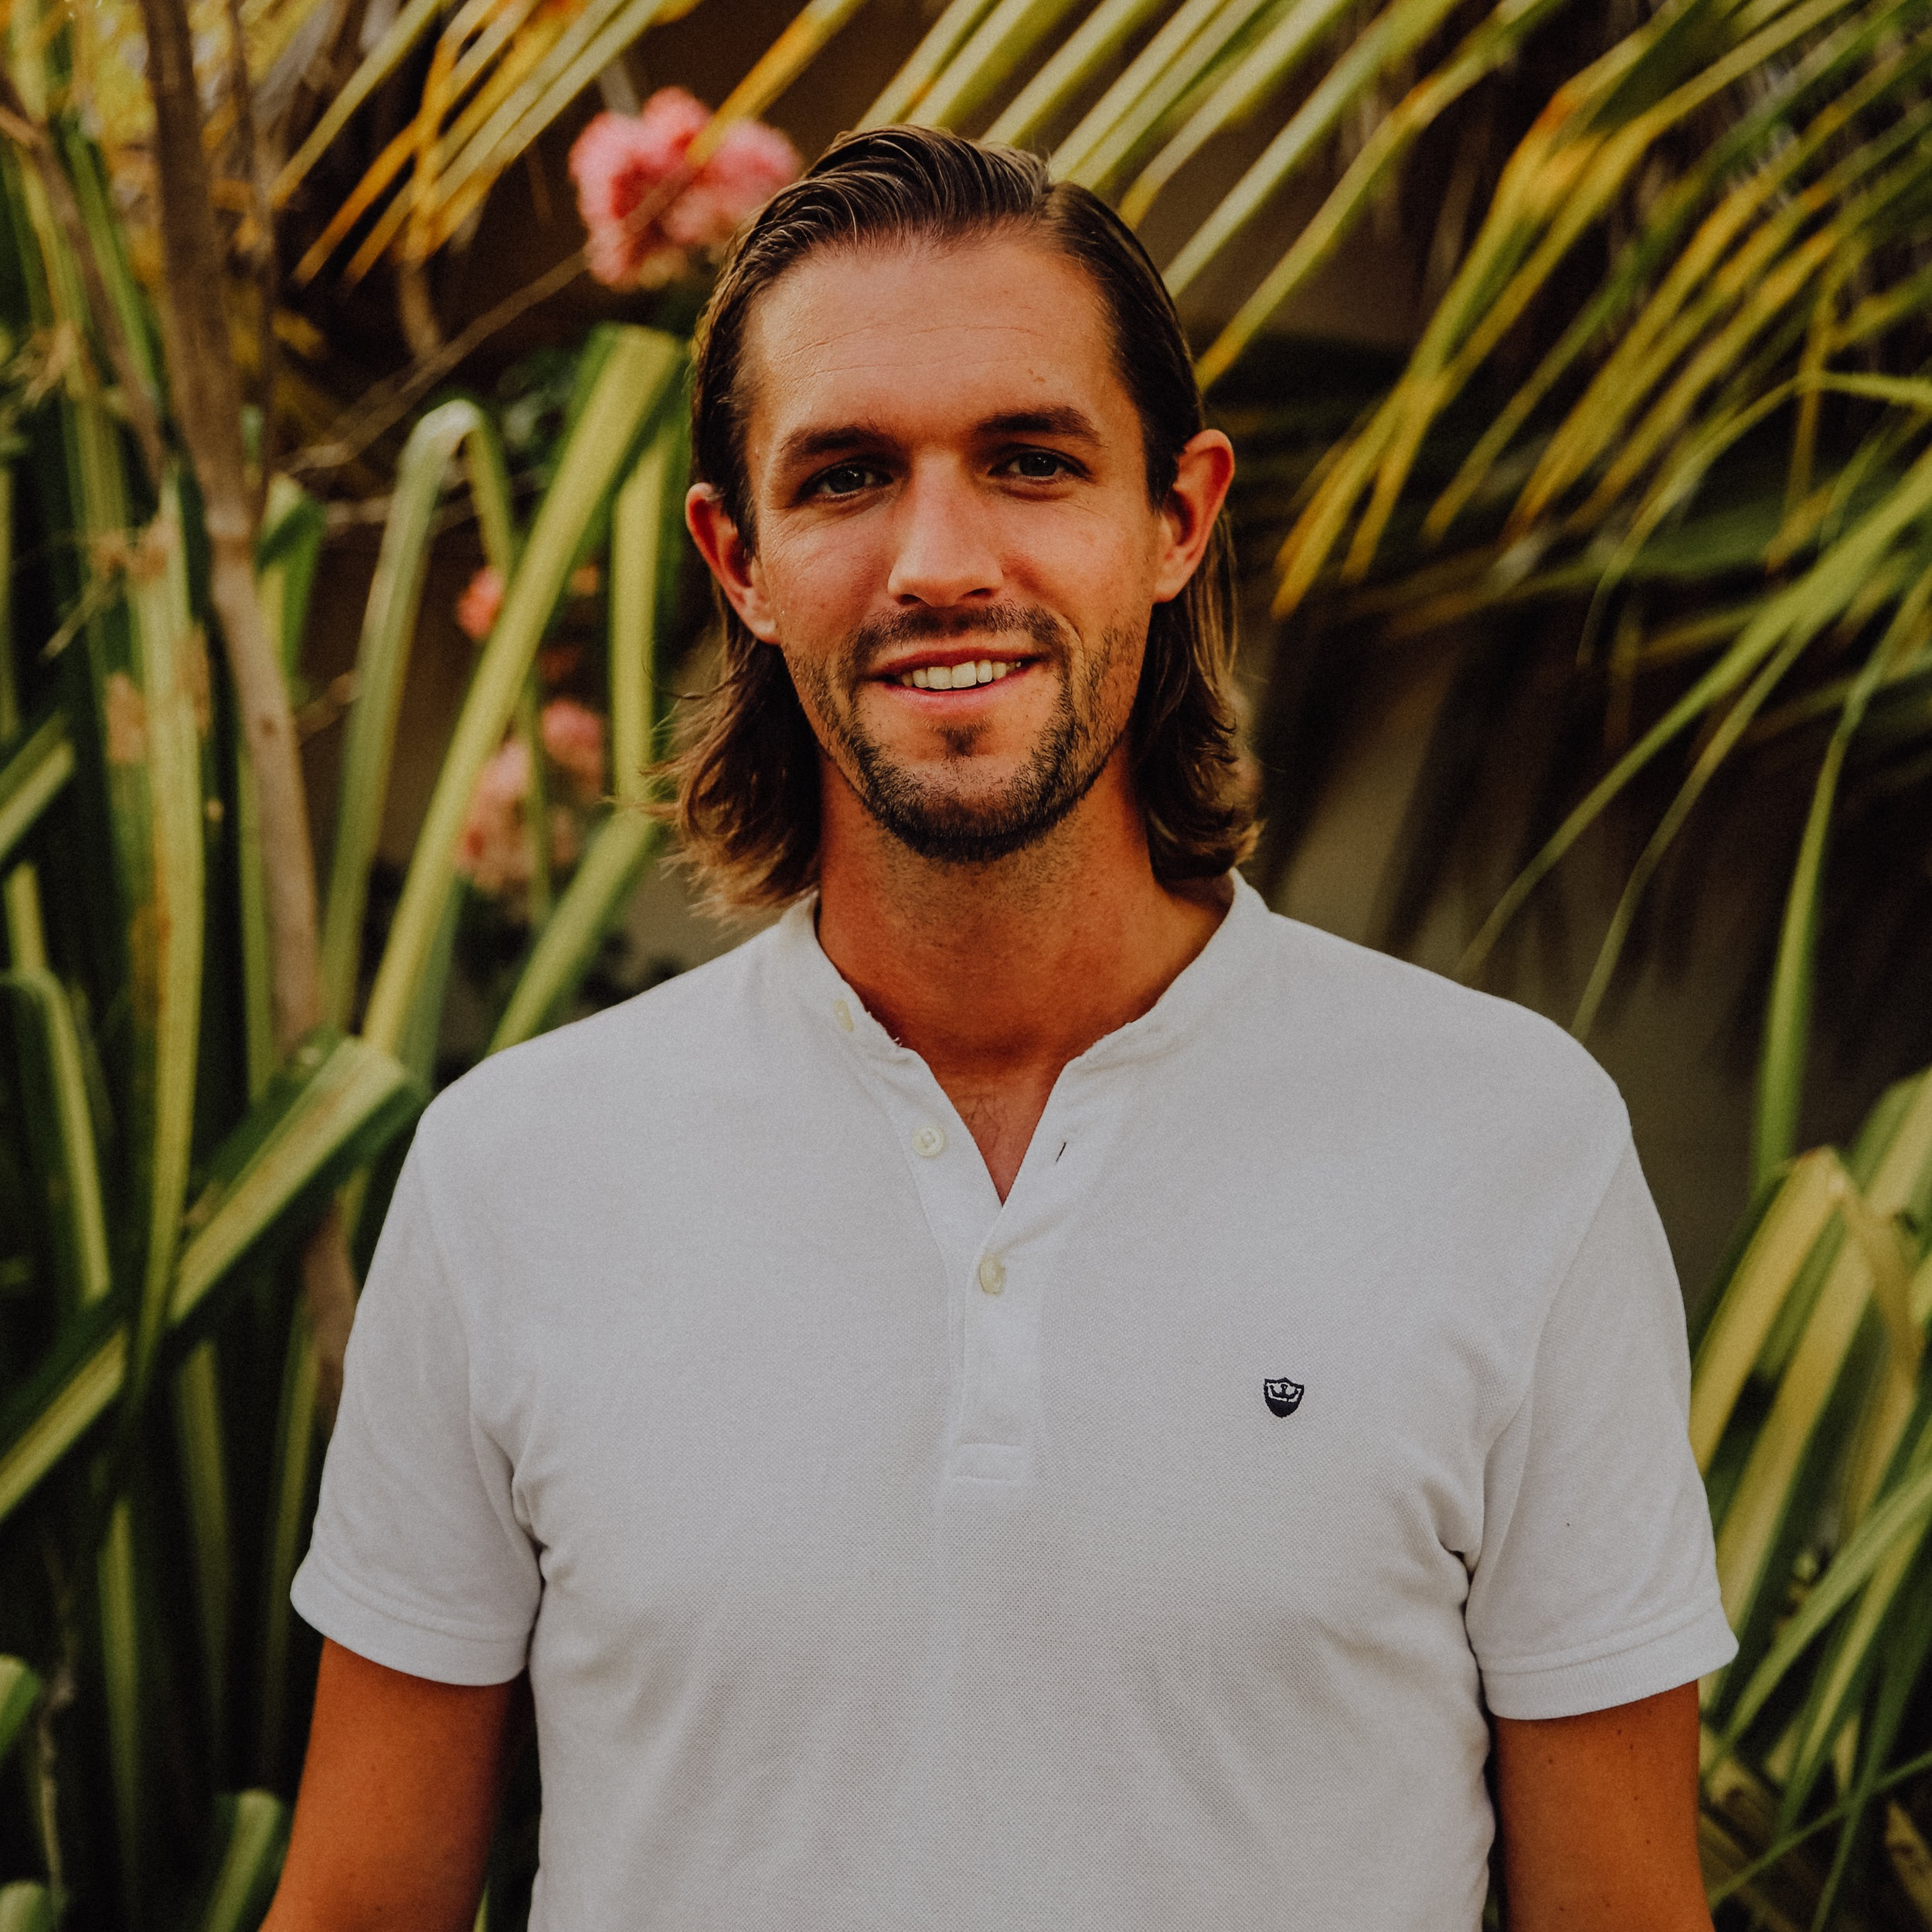 Mark van der heijden - After working in advertising for 7 years Mark quit his job to travel the world as The Backpacker Intern, trading his skills for experiences at 32 companies in 27 countries on all 7 continents. Now as the co-founder of Wanderbrief he travels the world as a Digital Nomad helping thousands of people to create a successful life that combines work and travel.